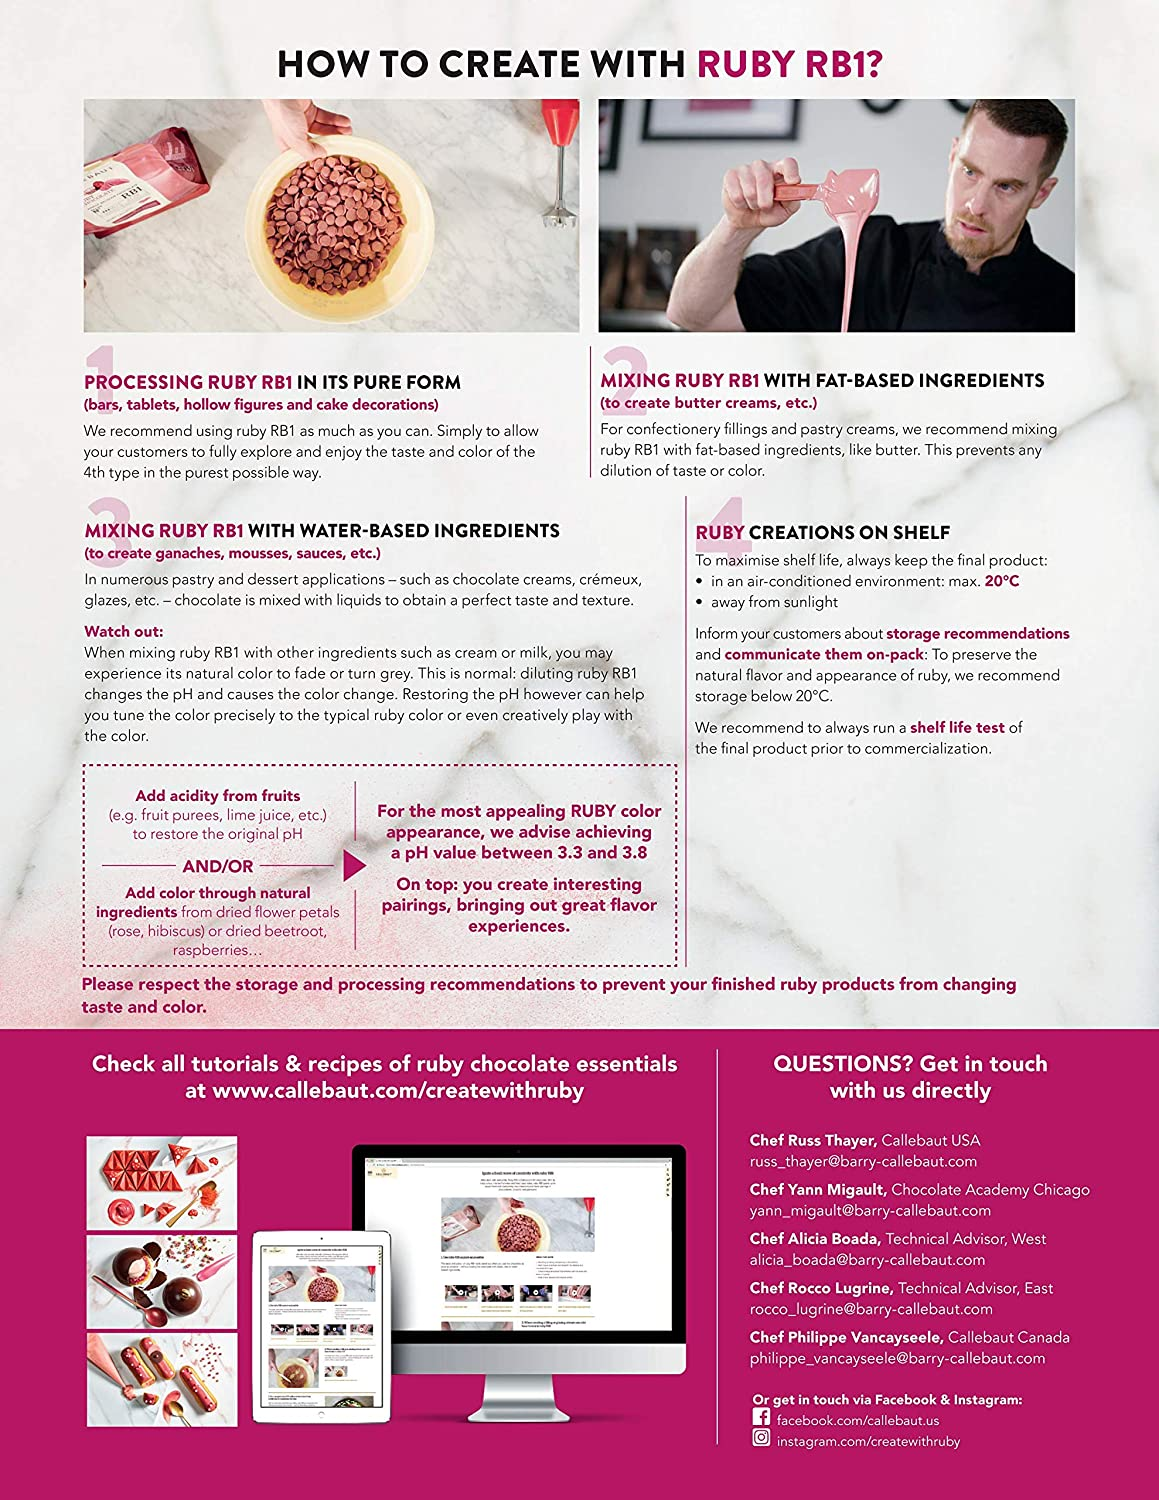 Callebaut Ruby Couverture Chocolate Callets   Recipe RB1   Crafted from the  Ruby Cocoa Bean, No